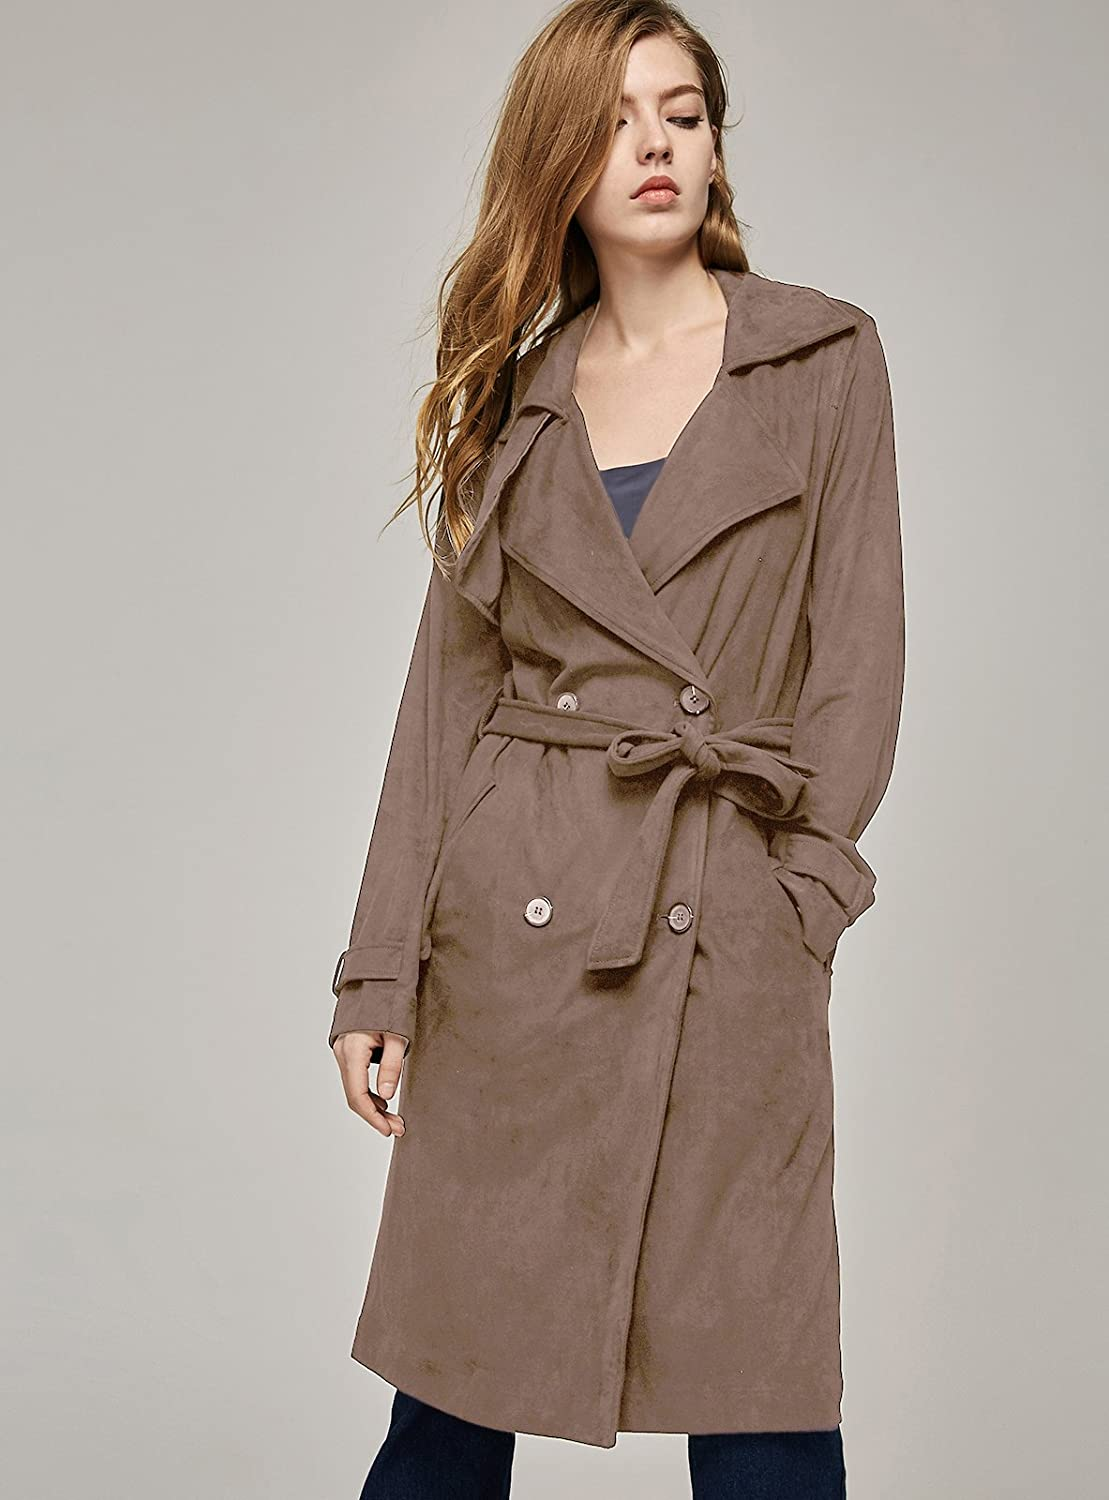 ebossy Womens Classic Double-Breasted Lapel Short Trench Coat Windbreaker Jacket with Belt